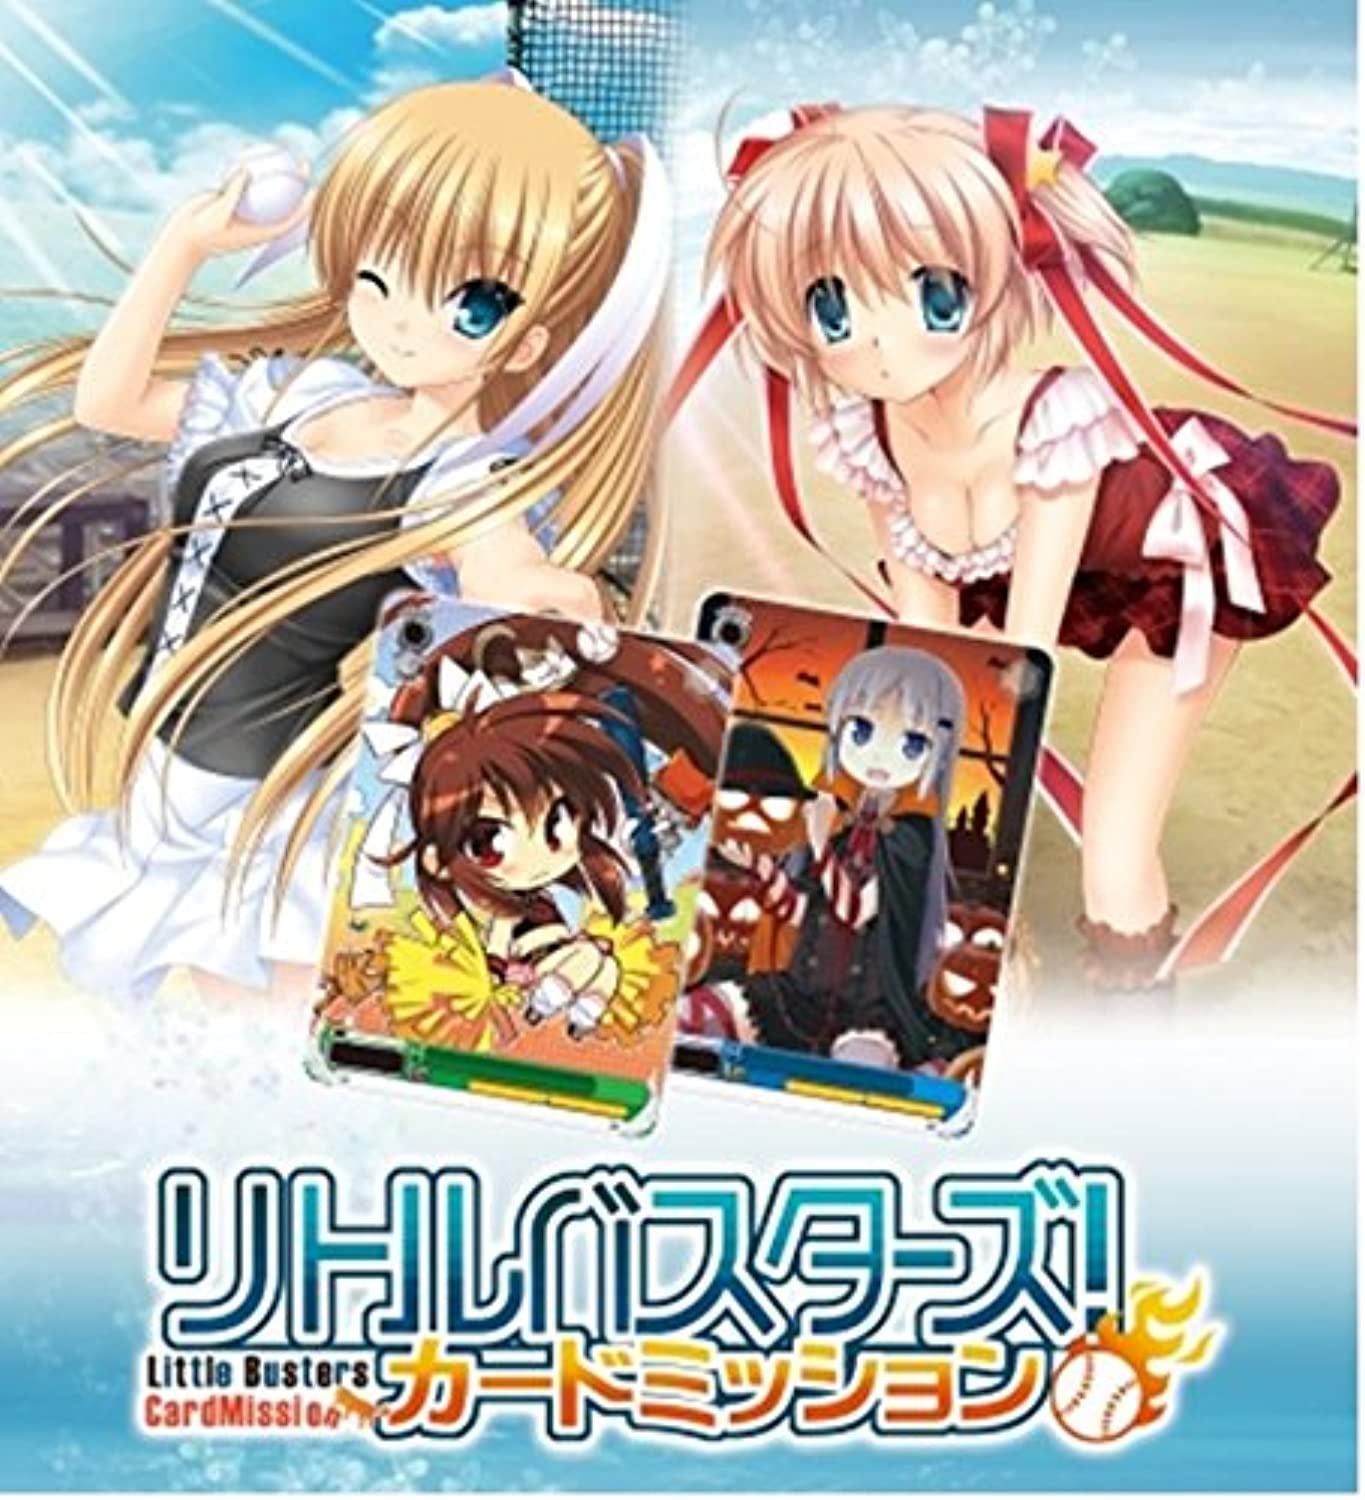 Weiss black Extra Booster Little Busters  Card mission BOX